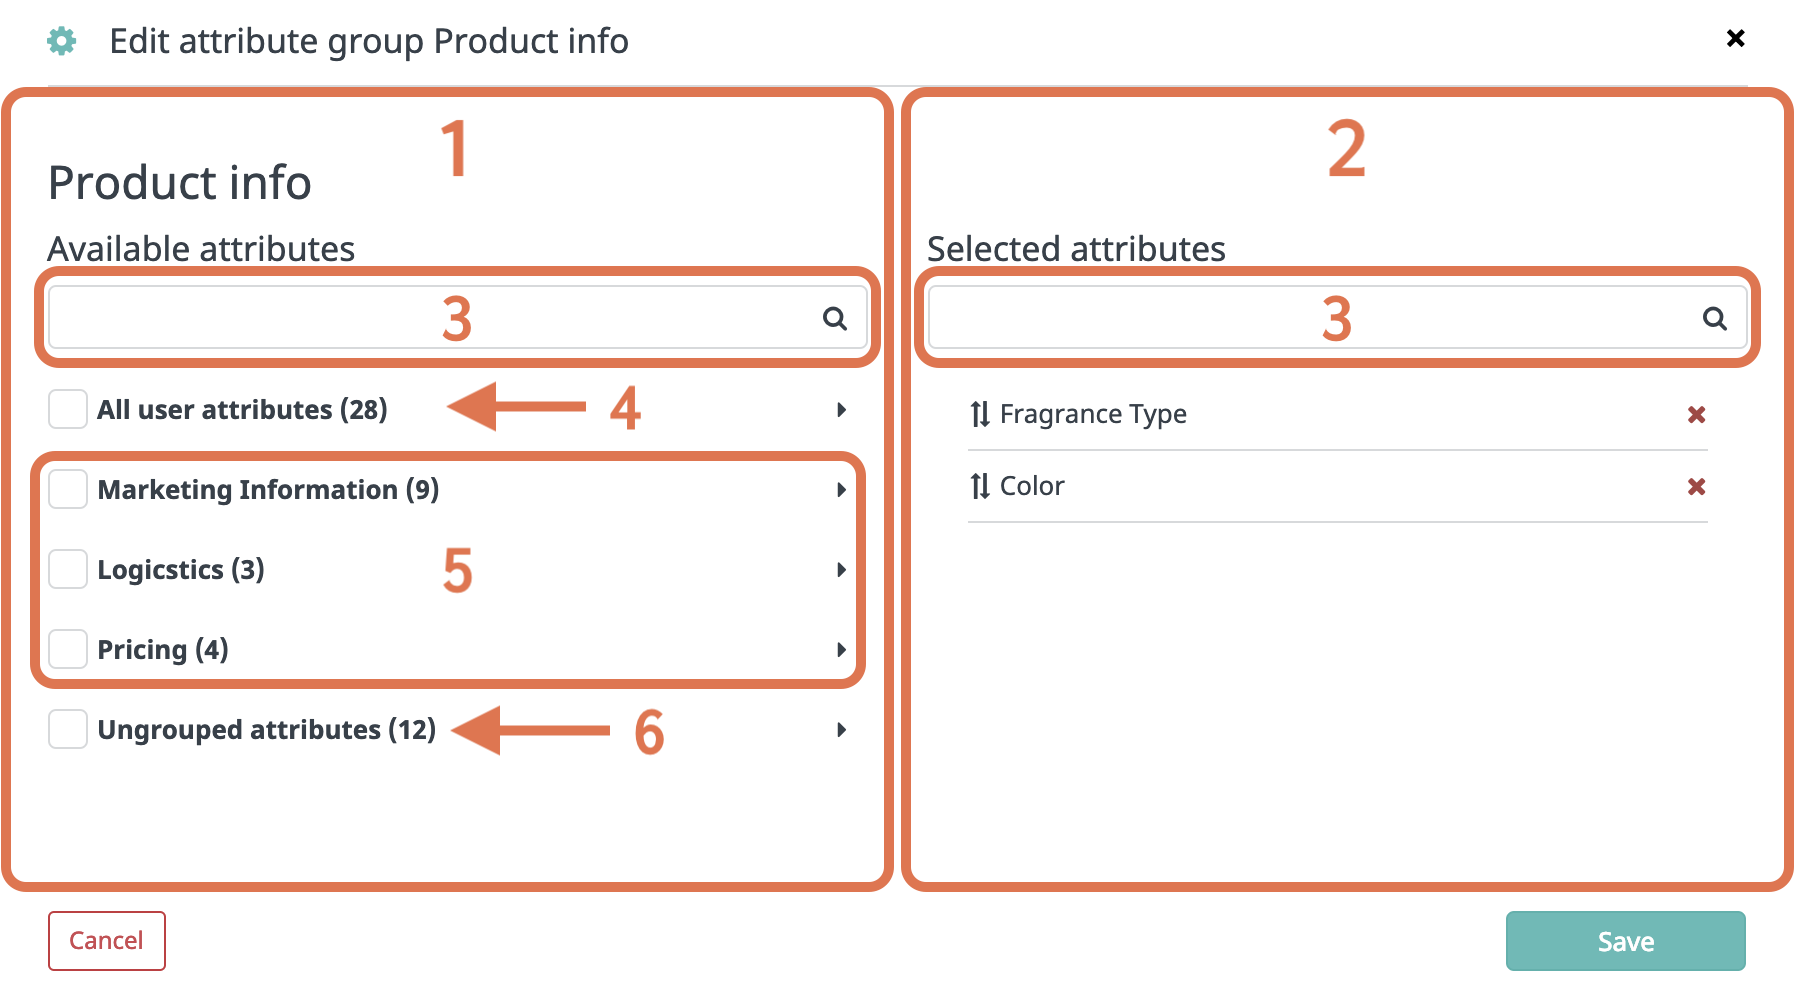 editing attribute groups product info-1